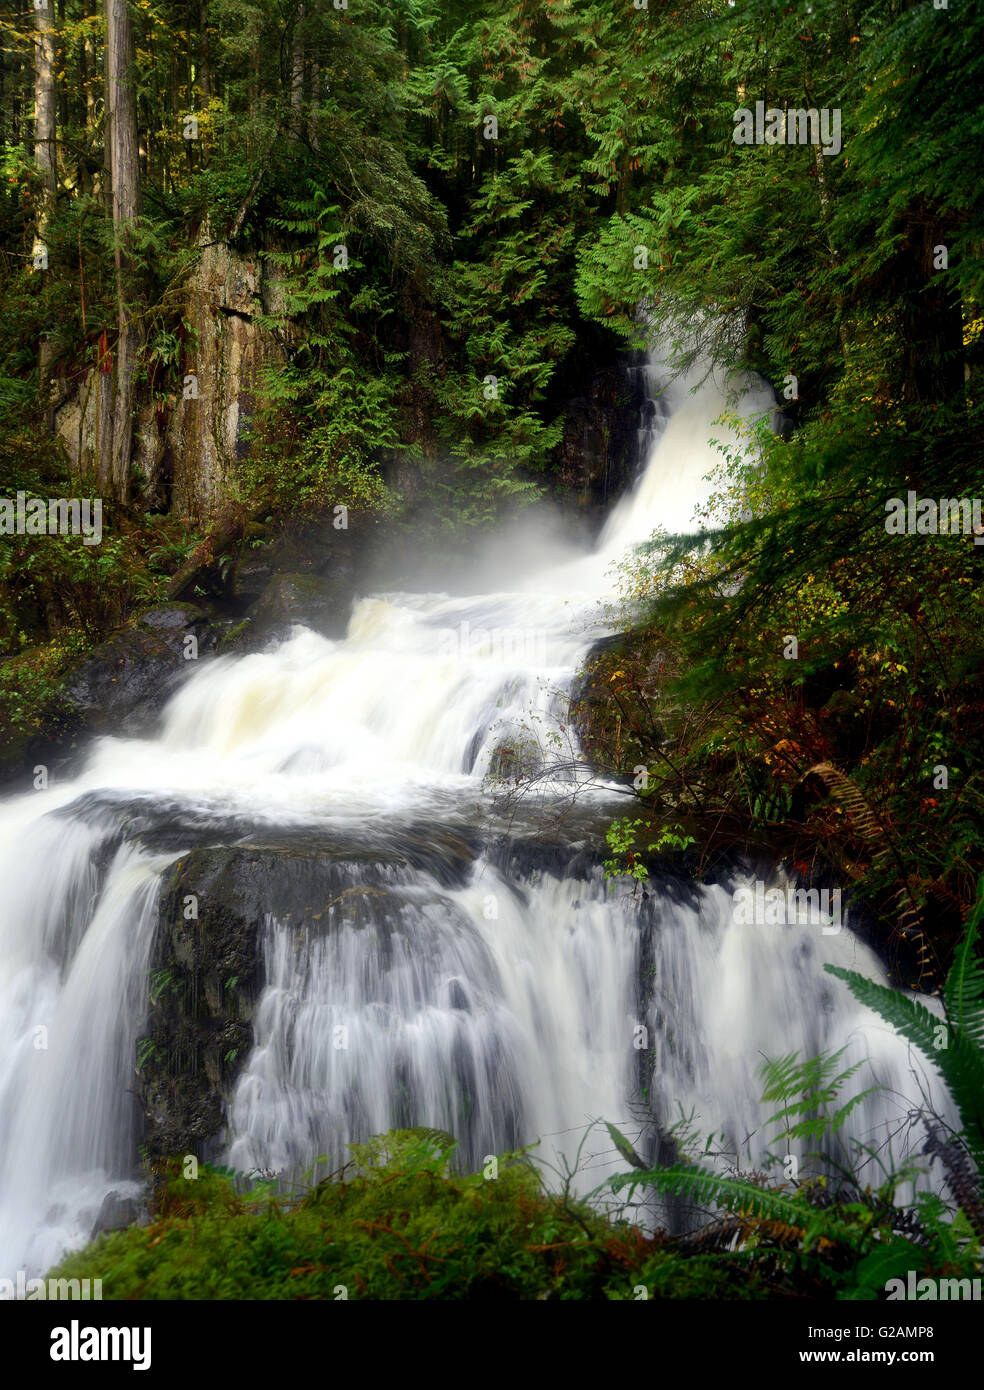 Steelhead  waterfalls in Steelhead Creek, Mission BC - Stock Image